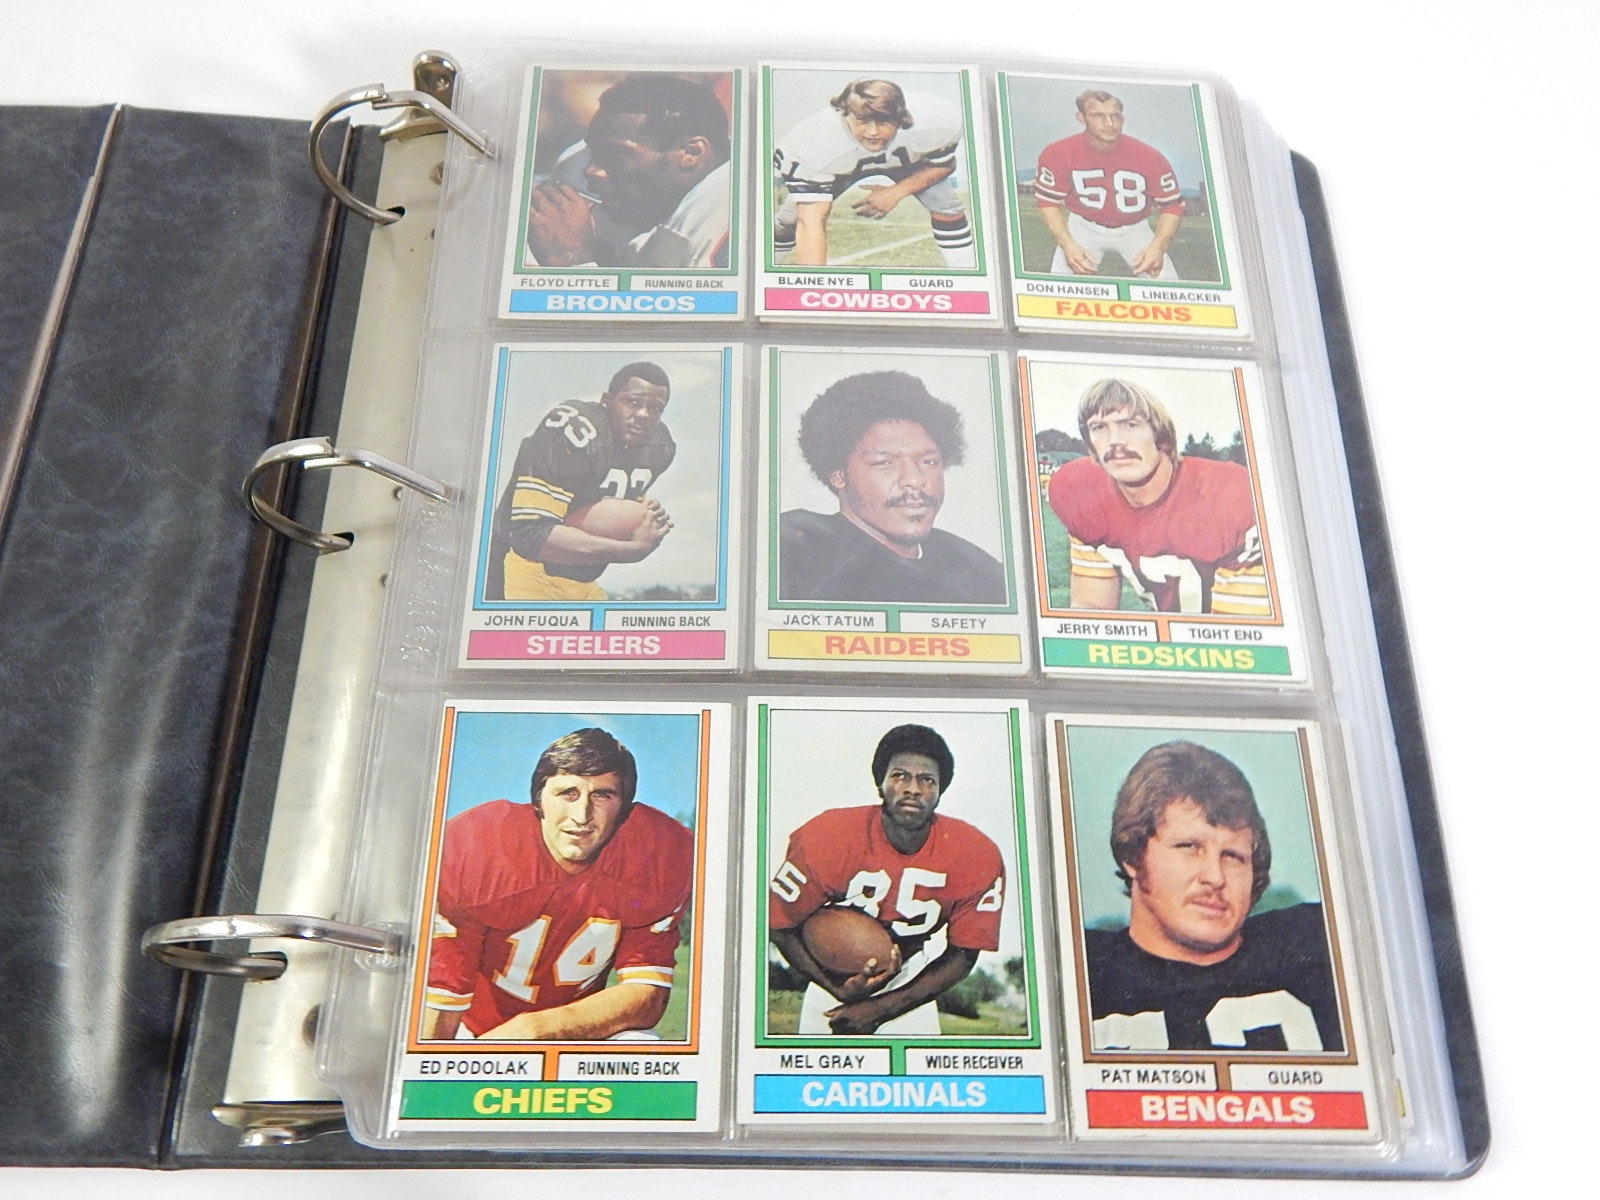 1974 Topps Football Partial Set - Around 300 Card Count